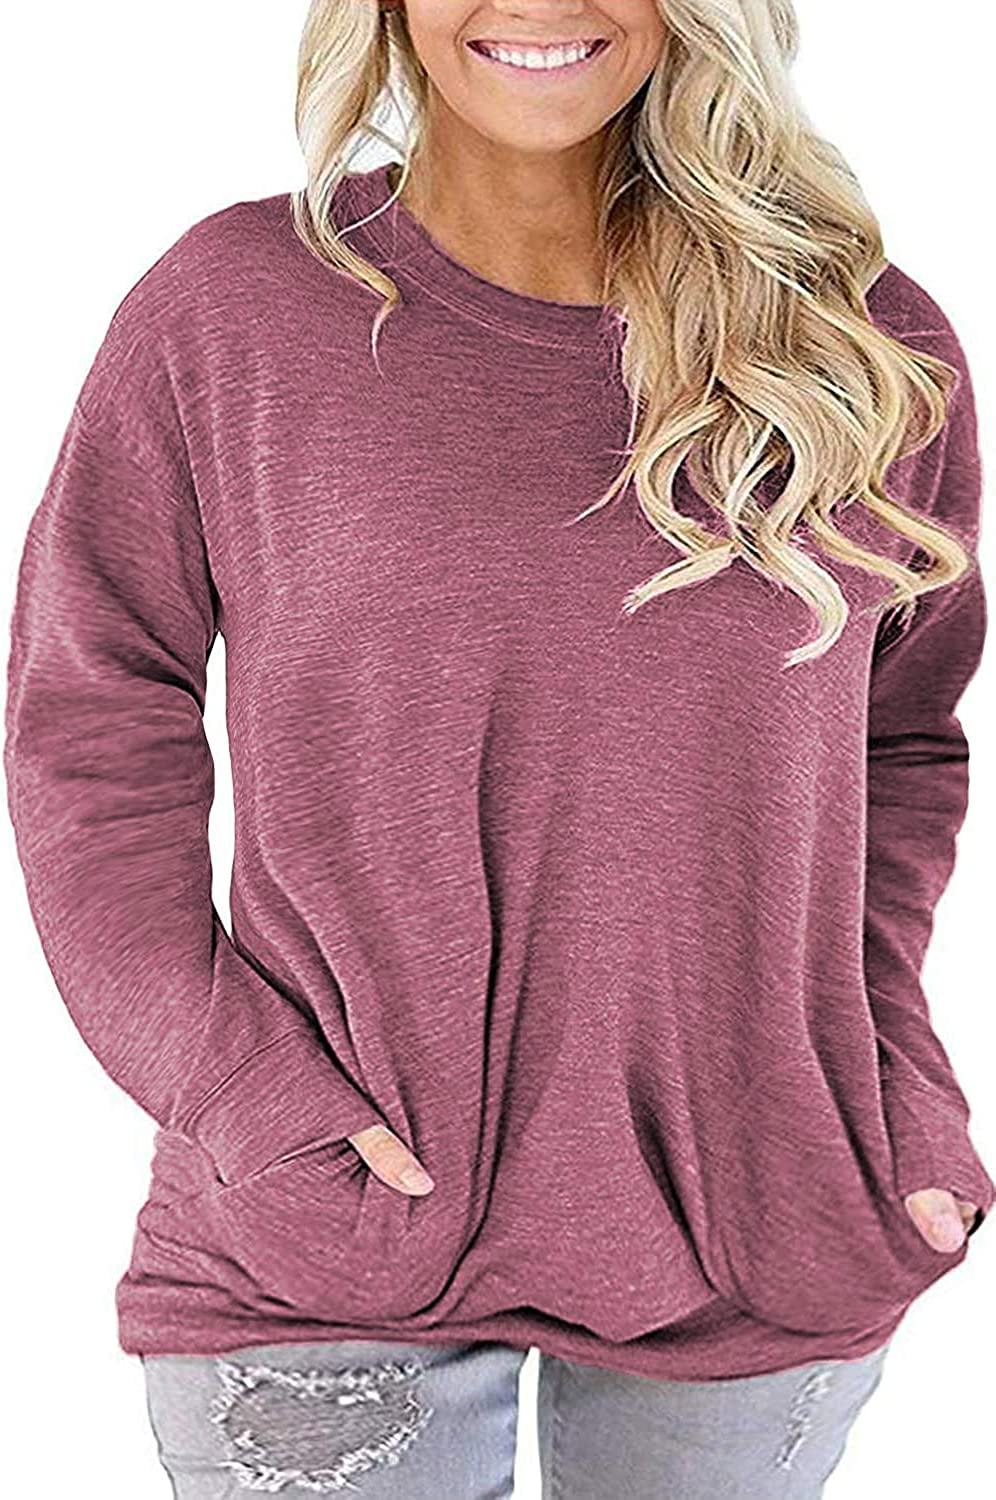 QUEEN PLUS Womens Plus Size Long Sleeve Tunic Tops Casual Baggy Tee Shirts with Pockets